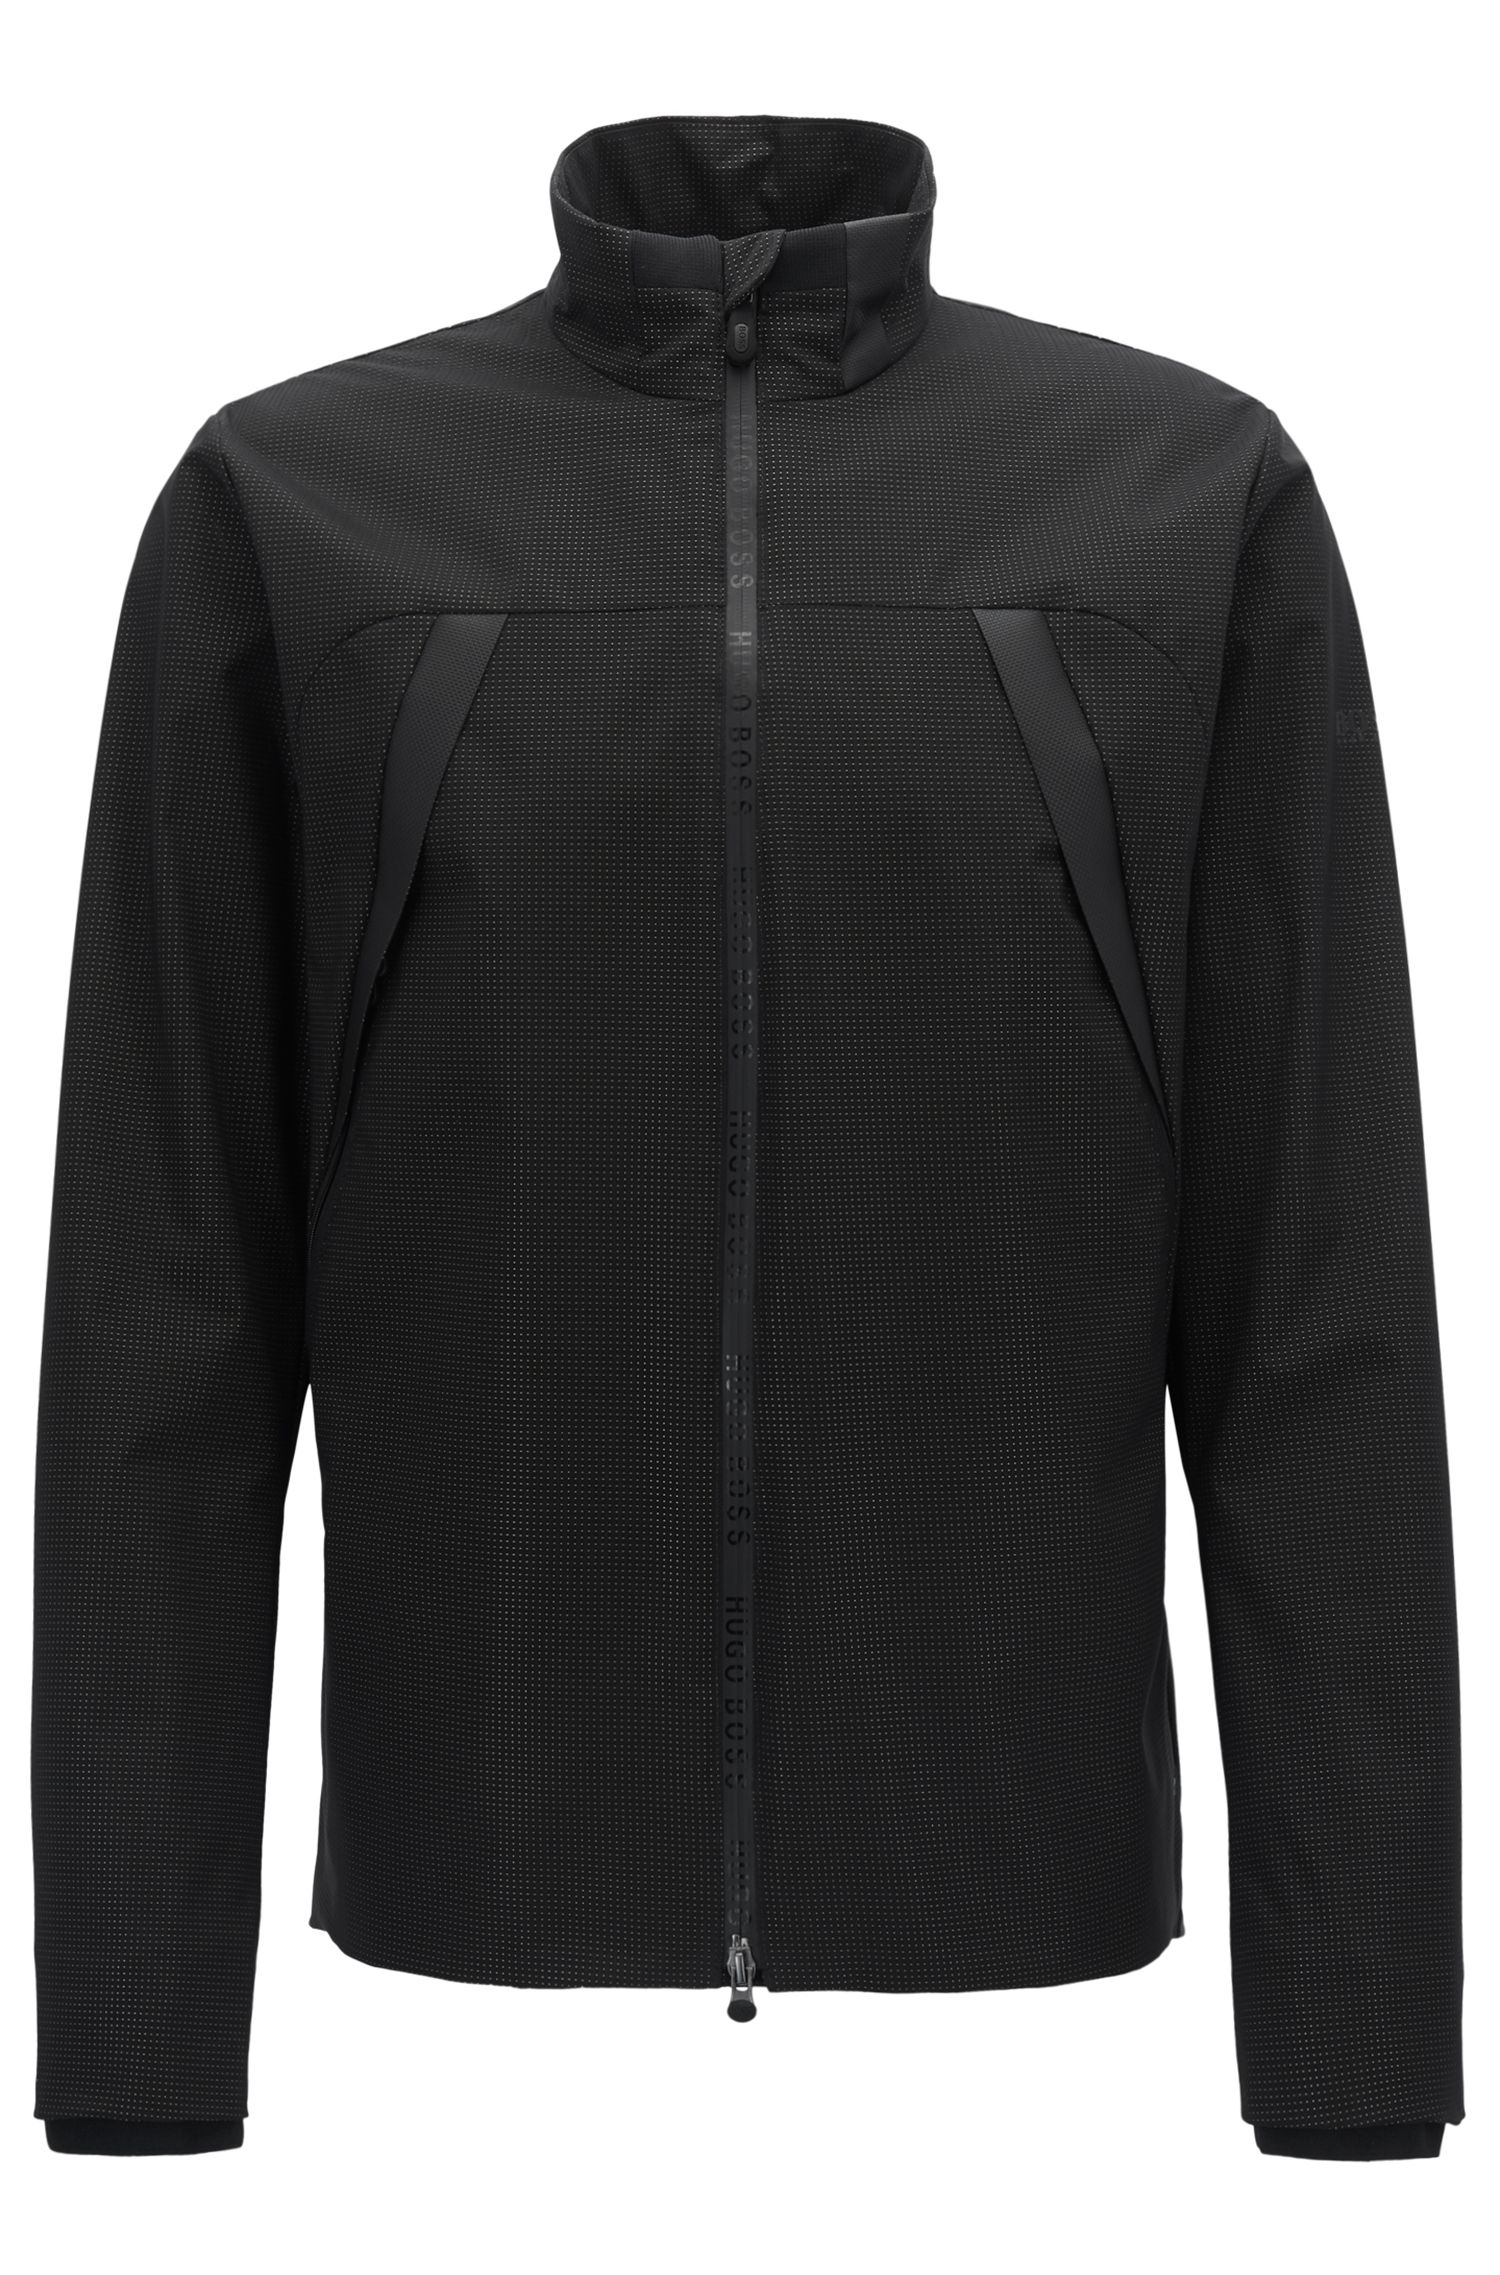 Performance jacket in water-repellent technical fabric